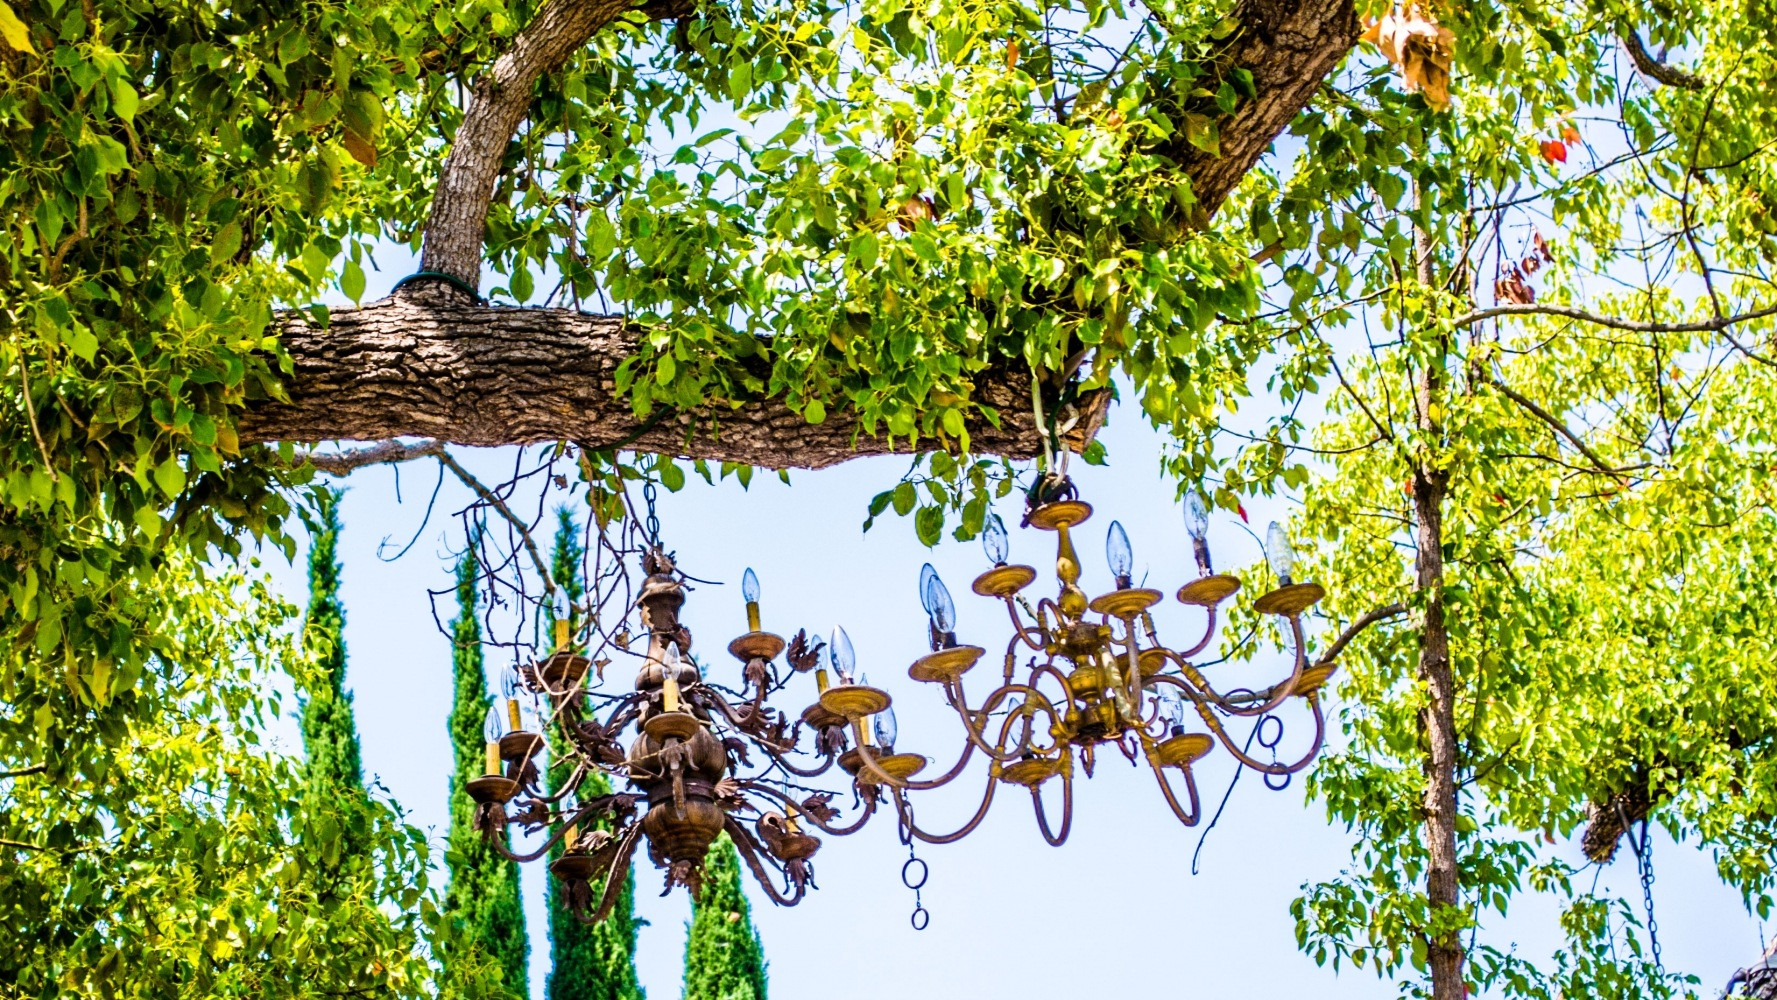 Chandeliers on a Tree in Los Angeles by friendlylocalguides